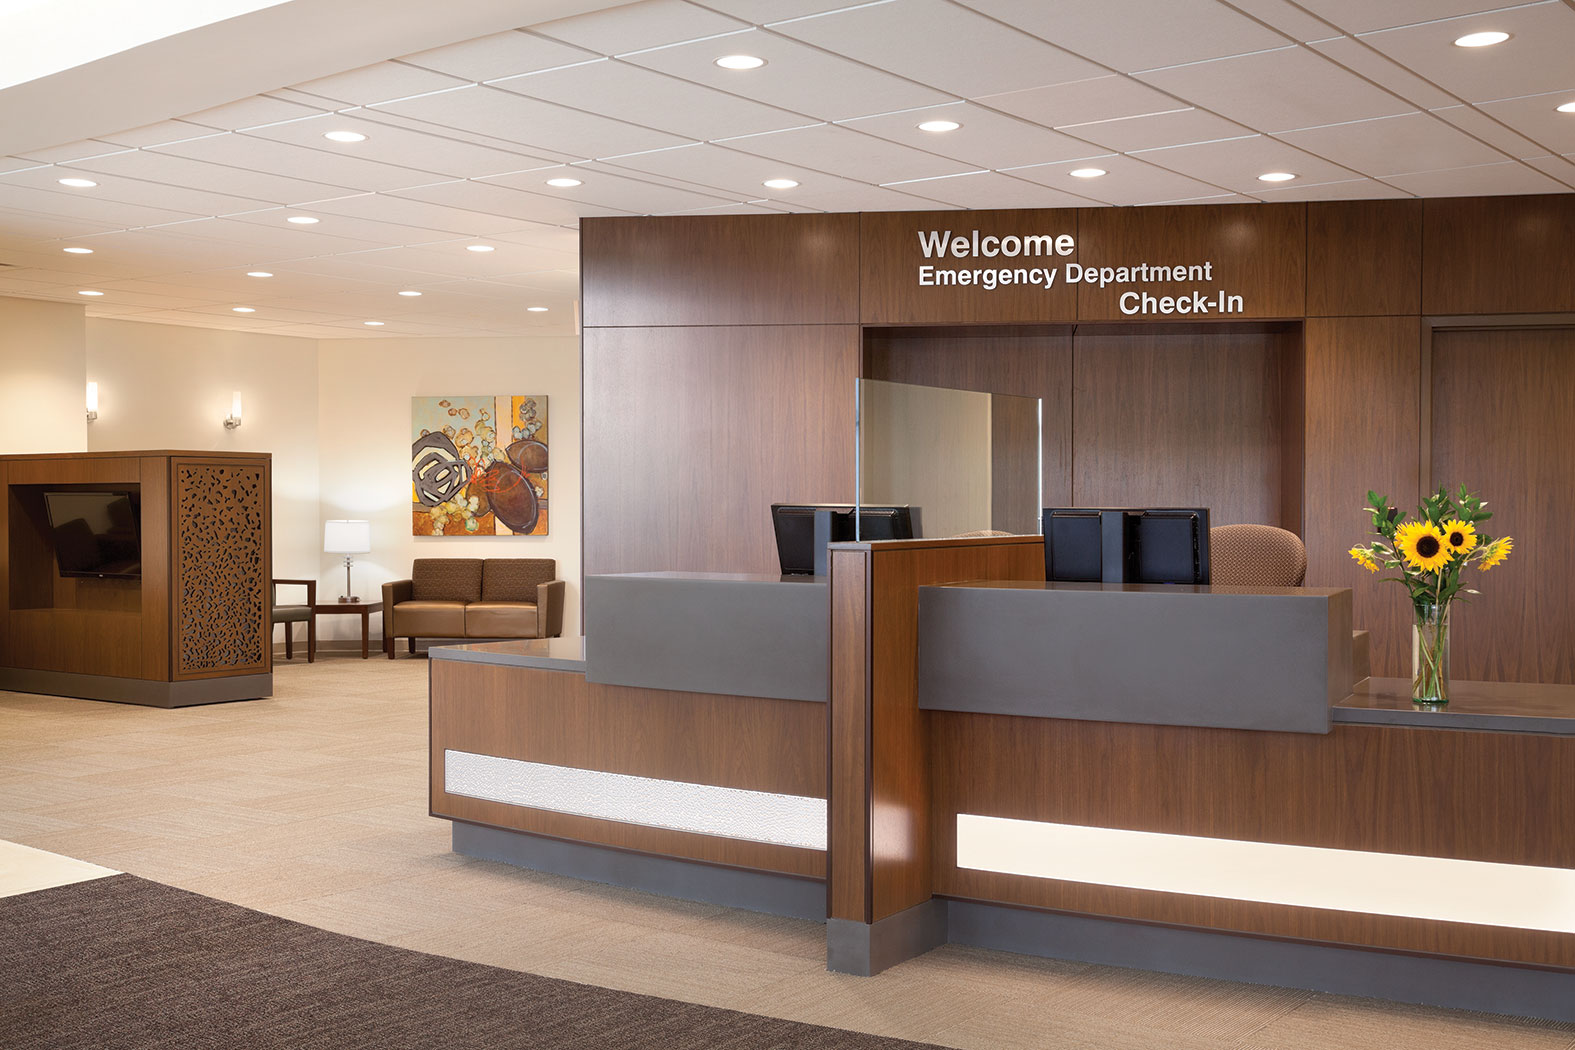 Hospital Check In Area : Hospital designs to bolster security health